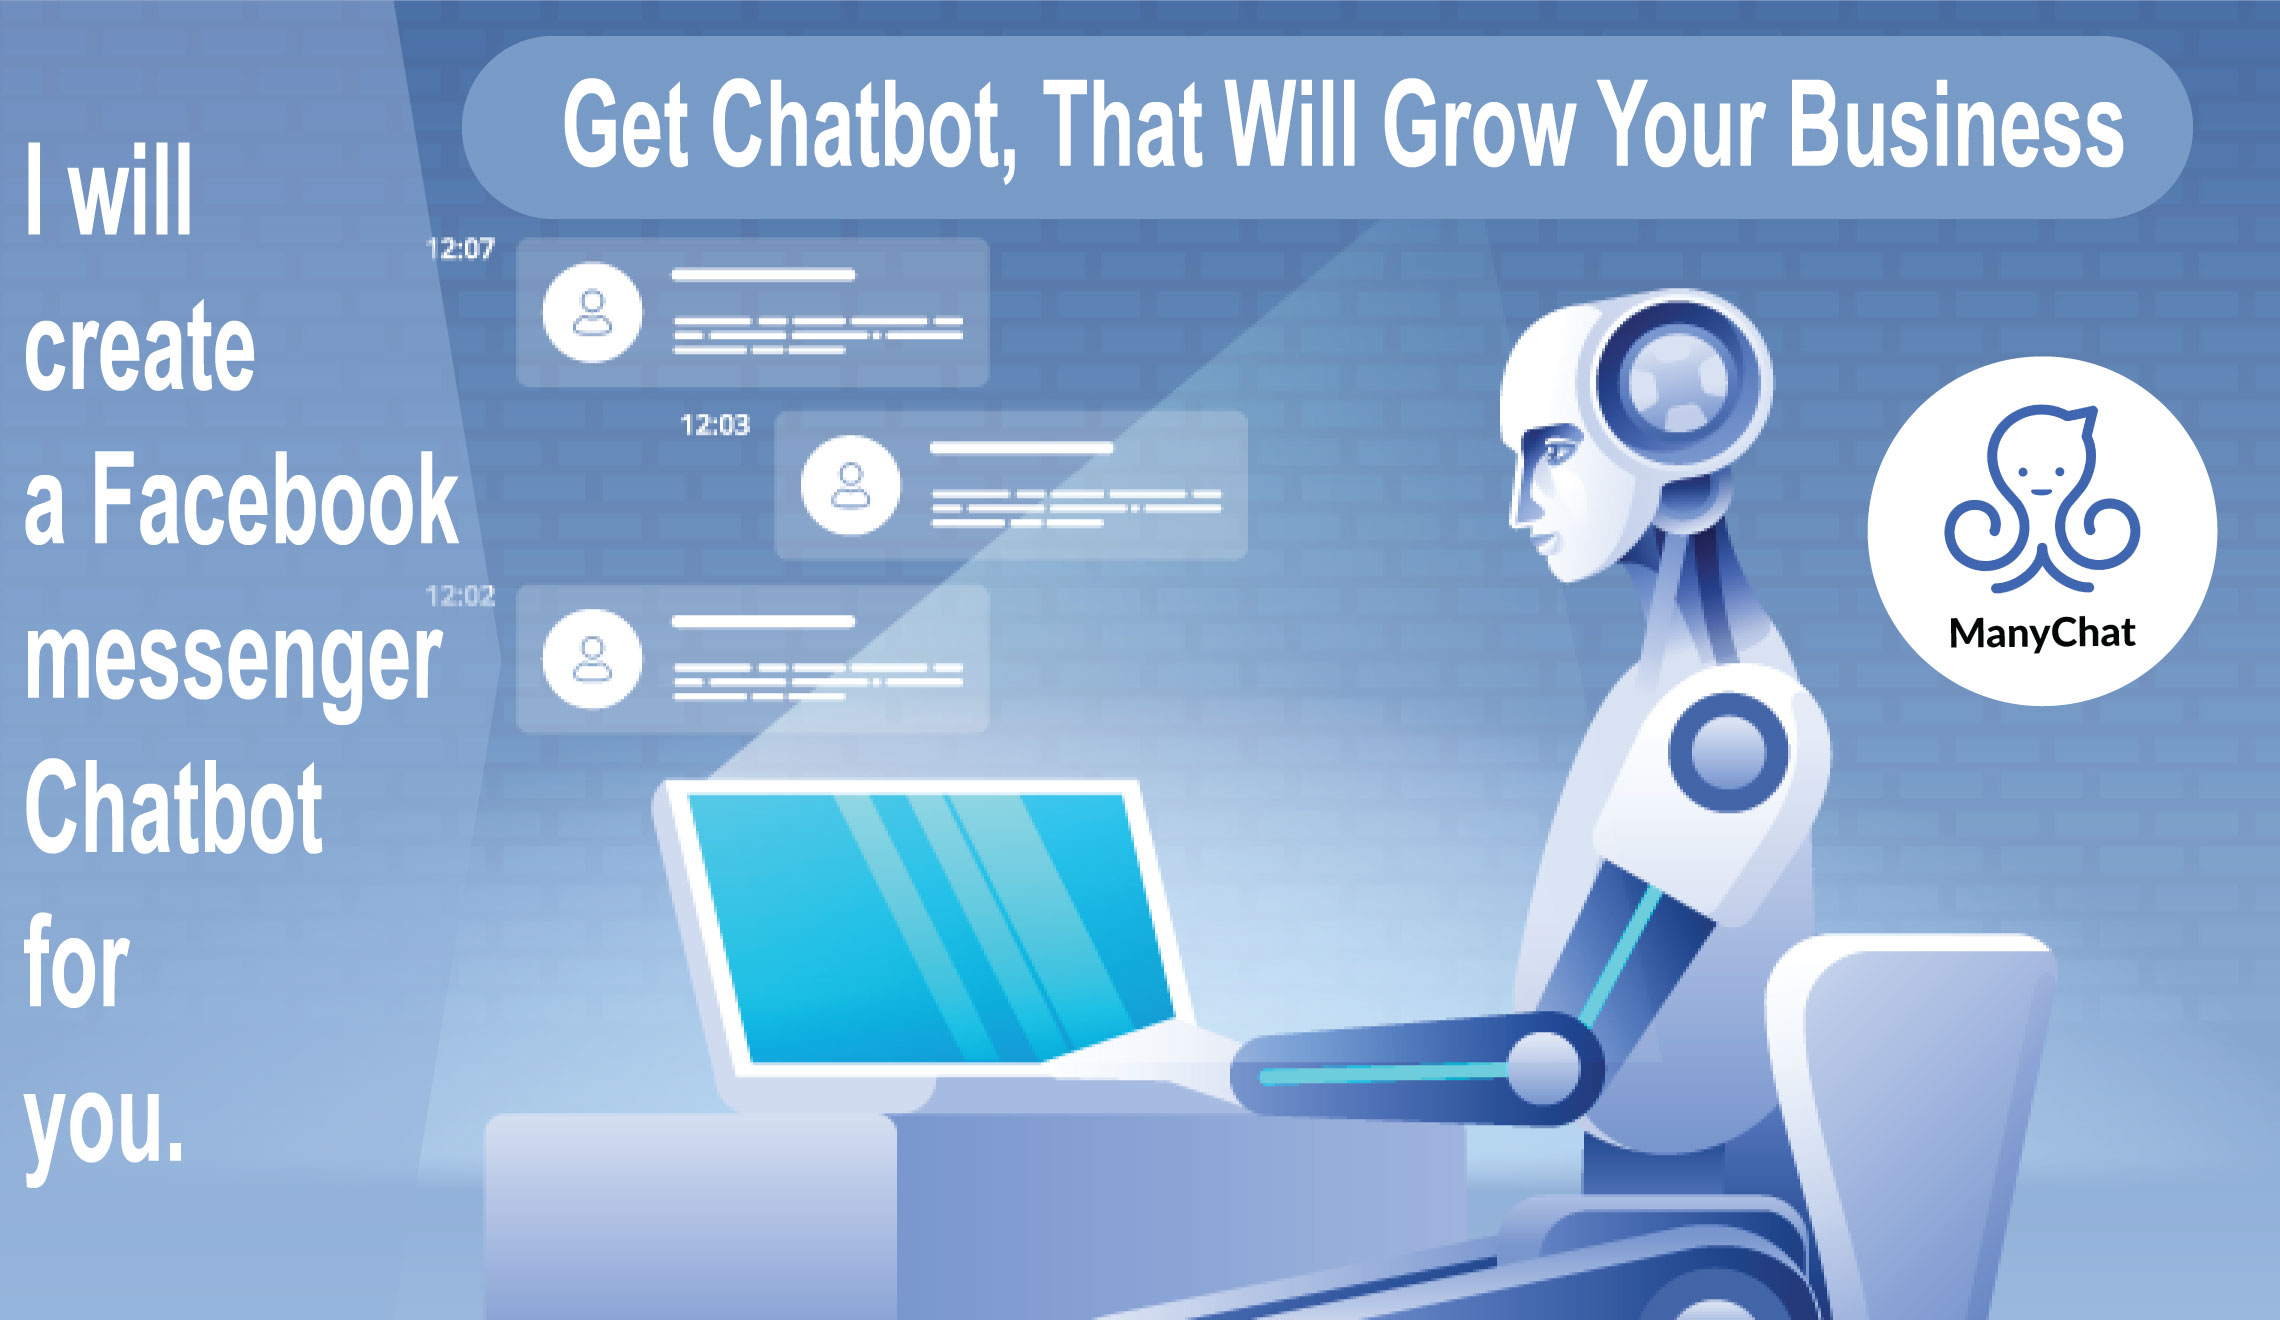 I will create a messenger Chatbot for you